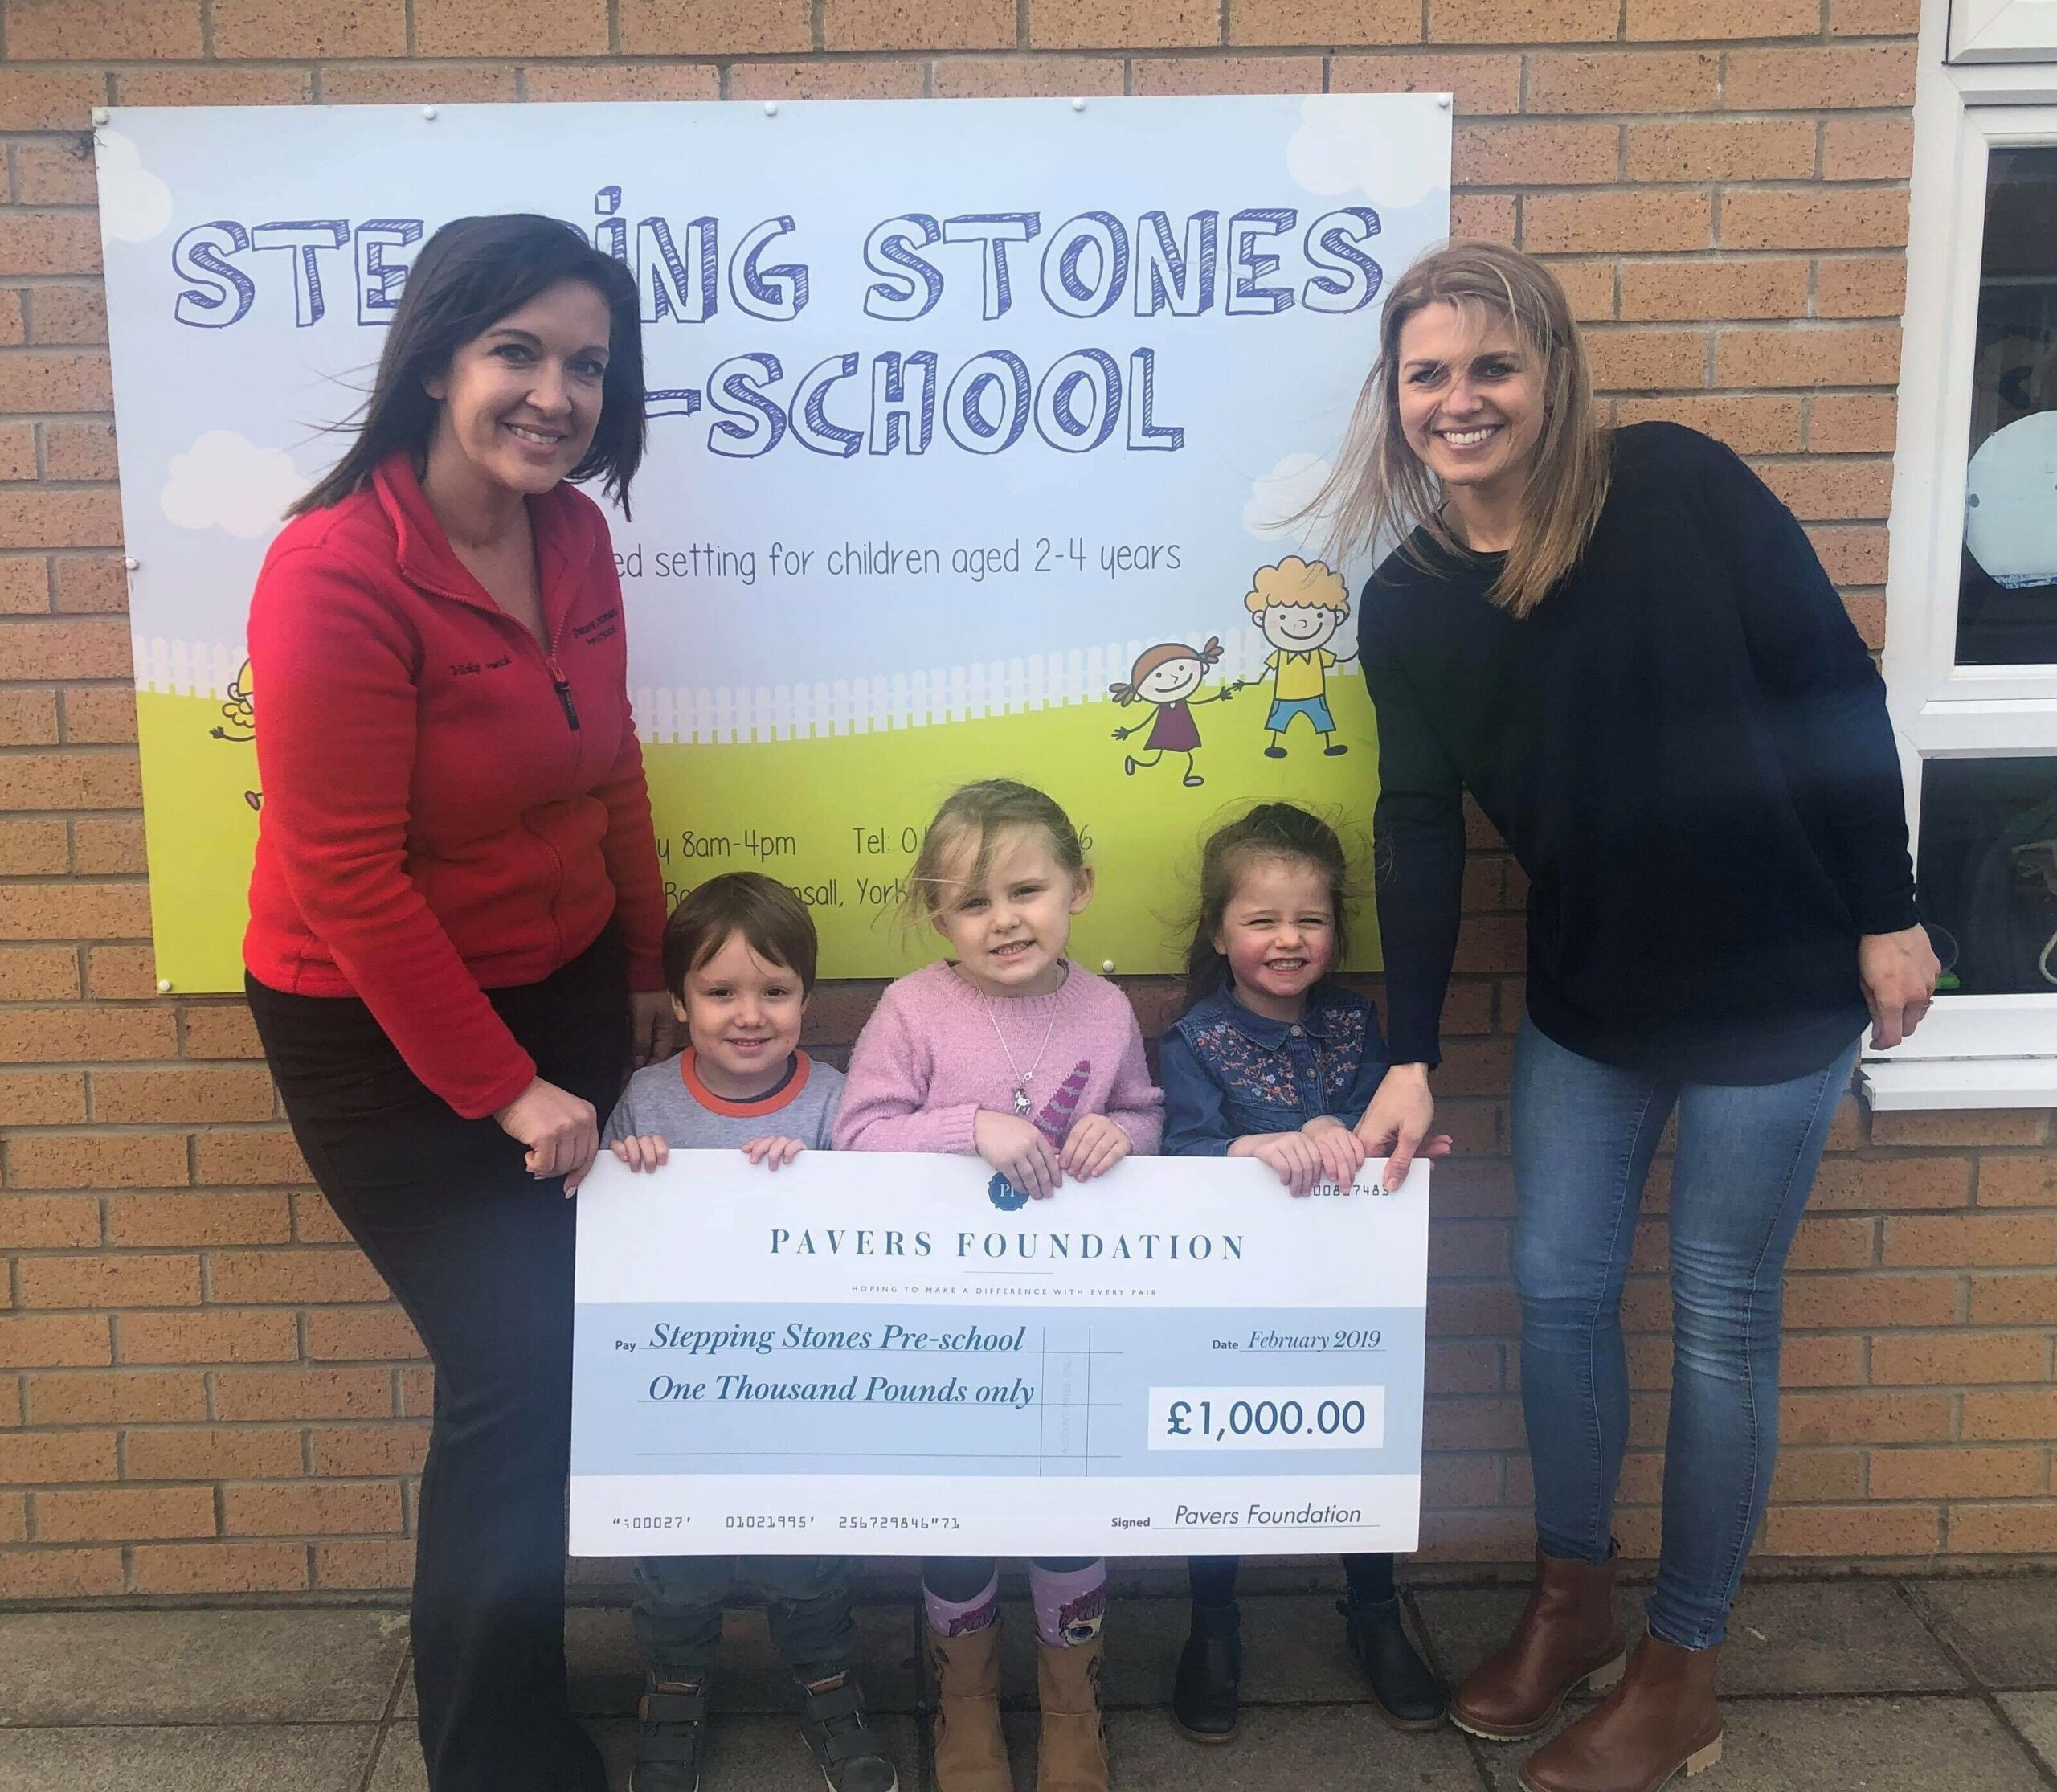 Pre-school receives £1,000 from the Pavers Foundation